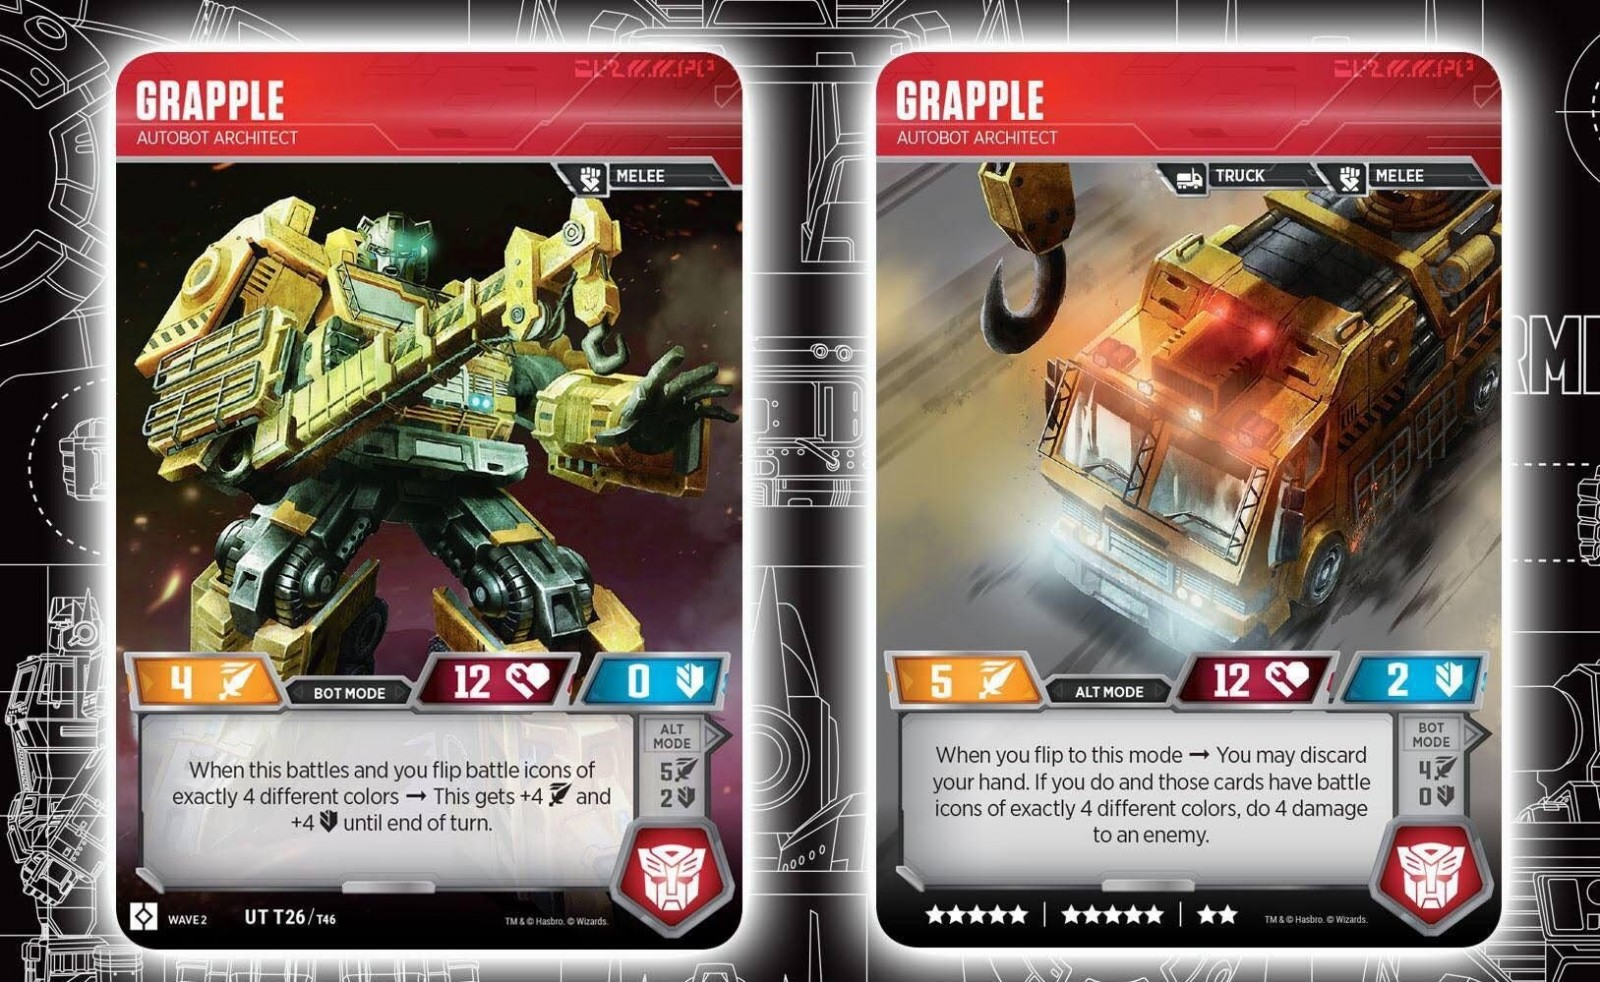 Transformers News: Grapple Revealed For The Official Transformers Trading Card Game And In-depth Analysis